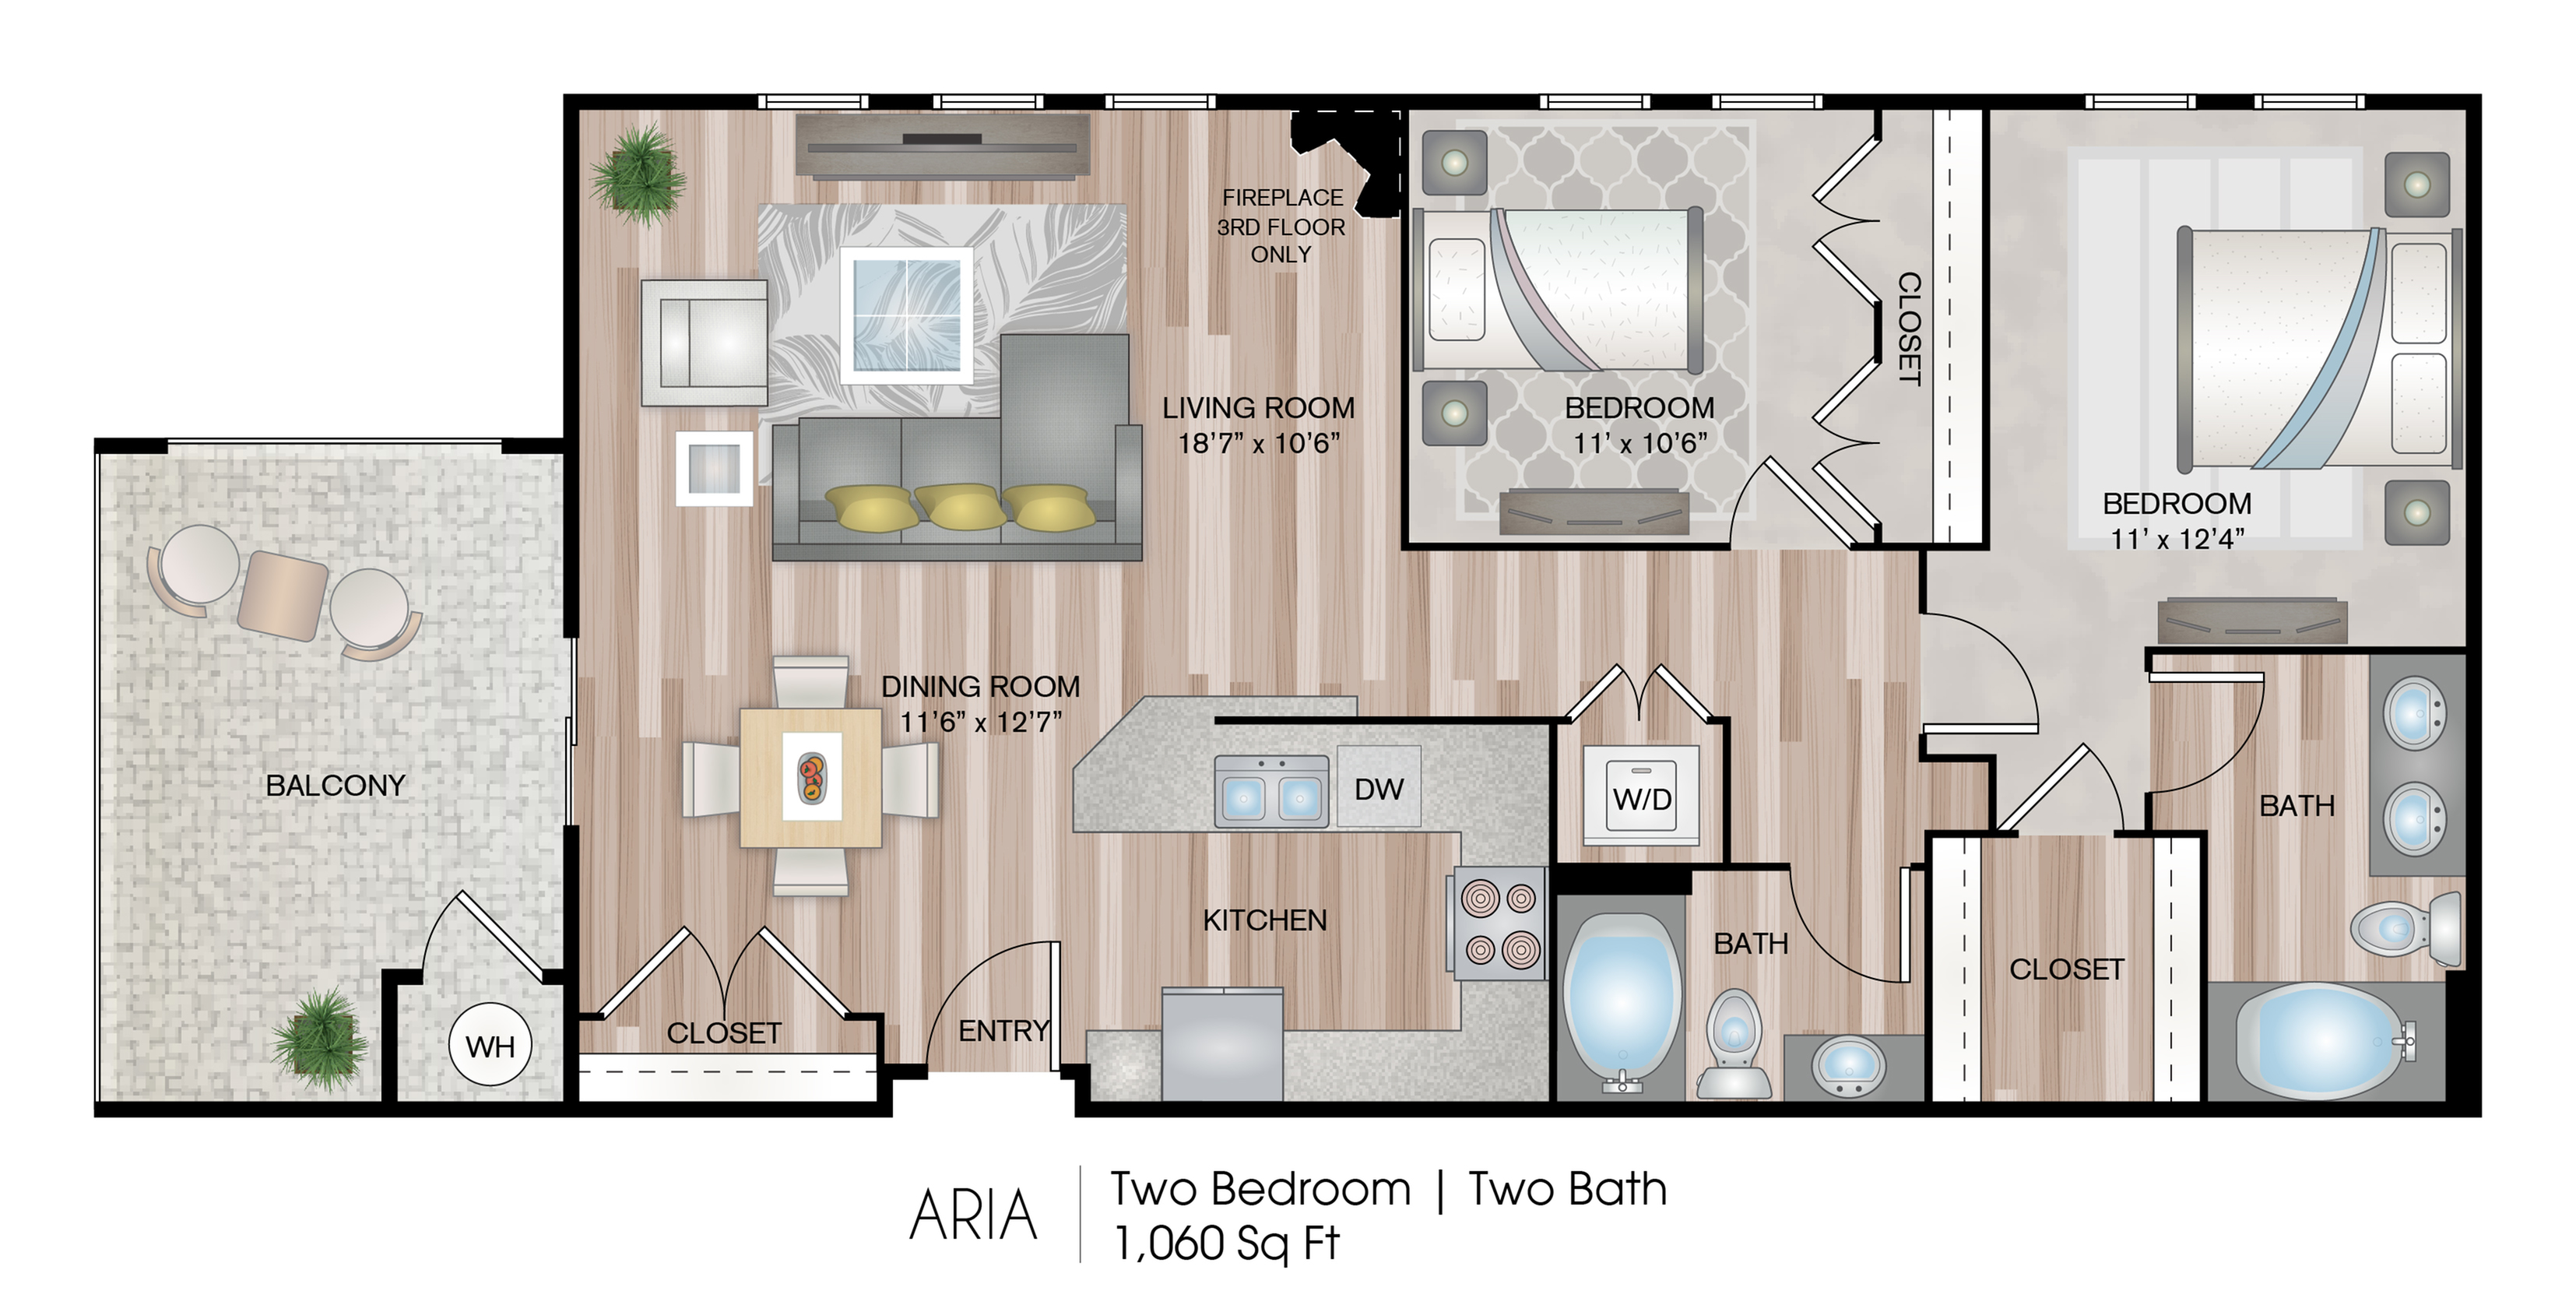 Aria 2 Bed Apartment Serenade At Riverpark Luxury Apartments In Oxnard Ca Serenade At River Park